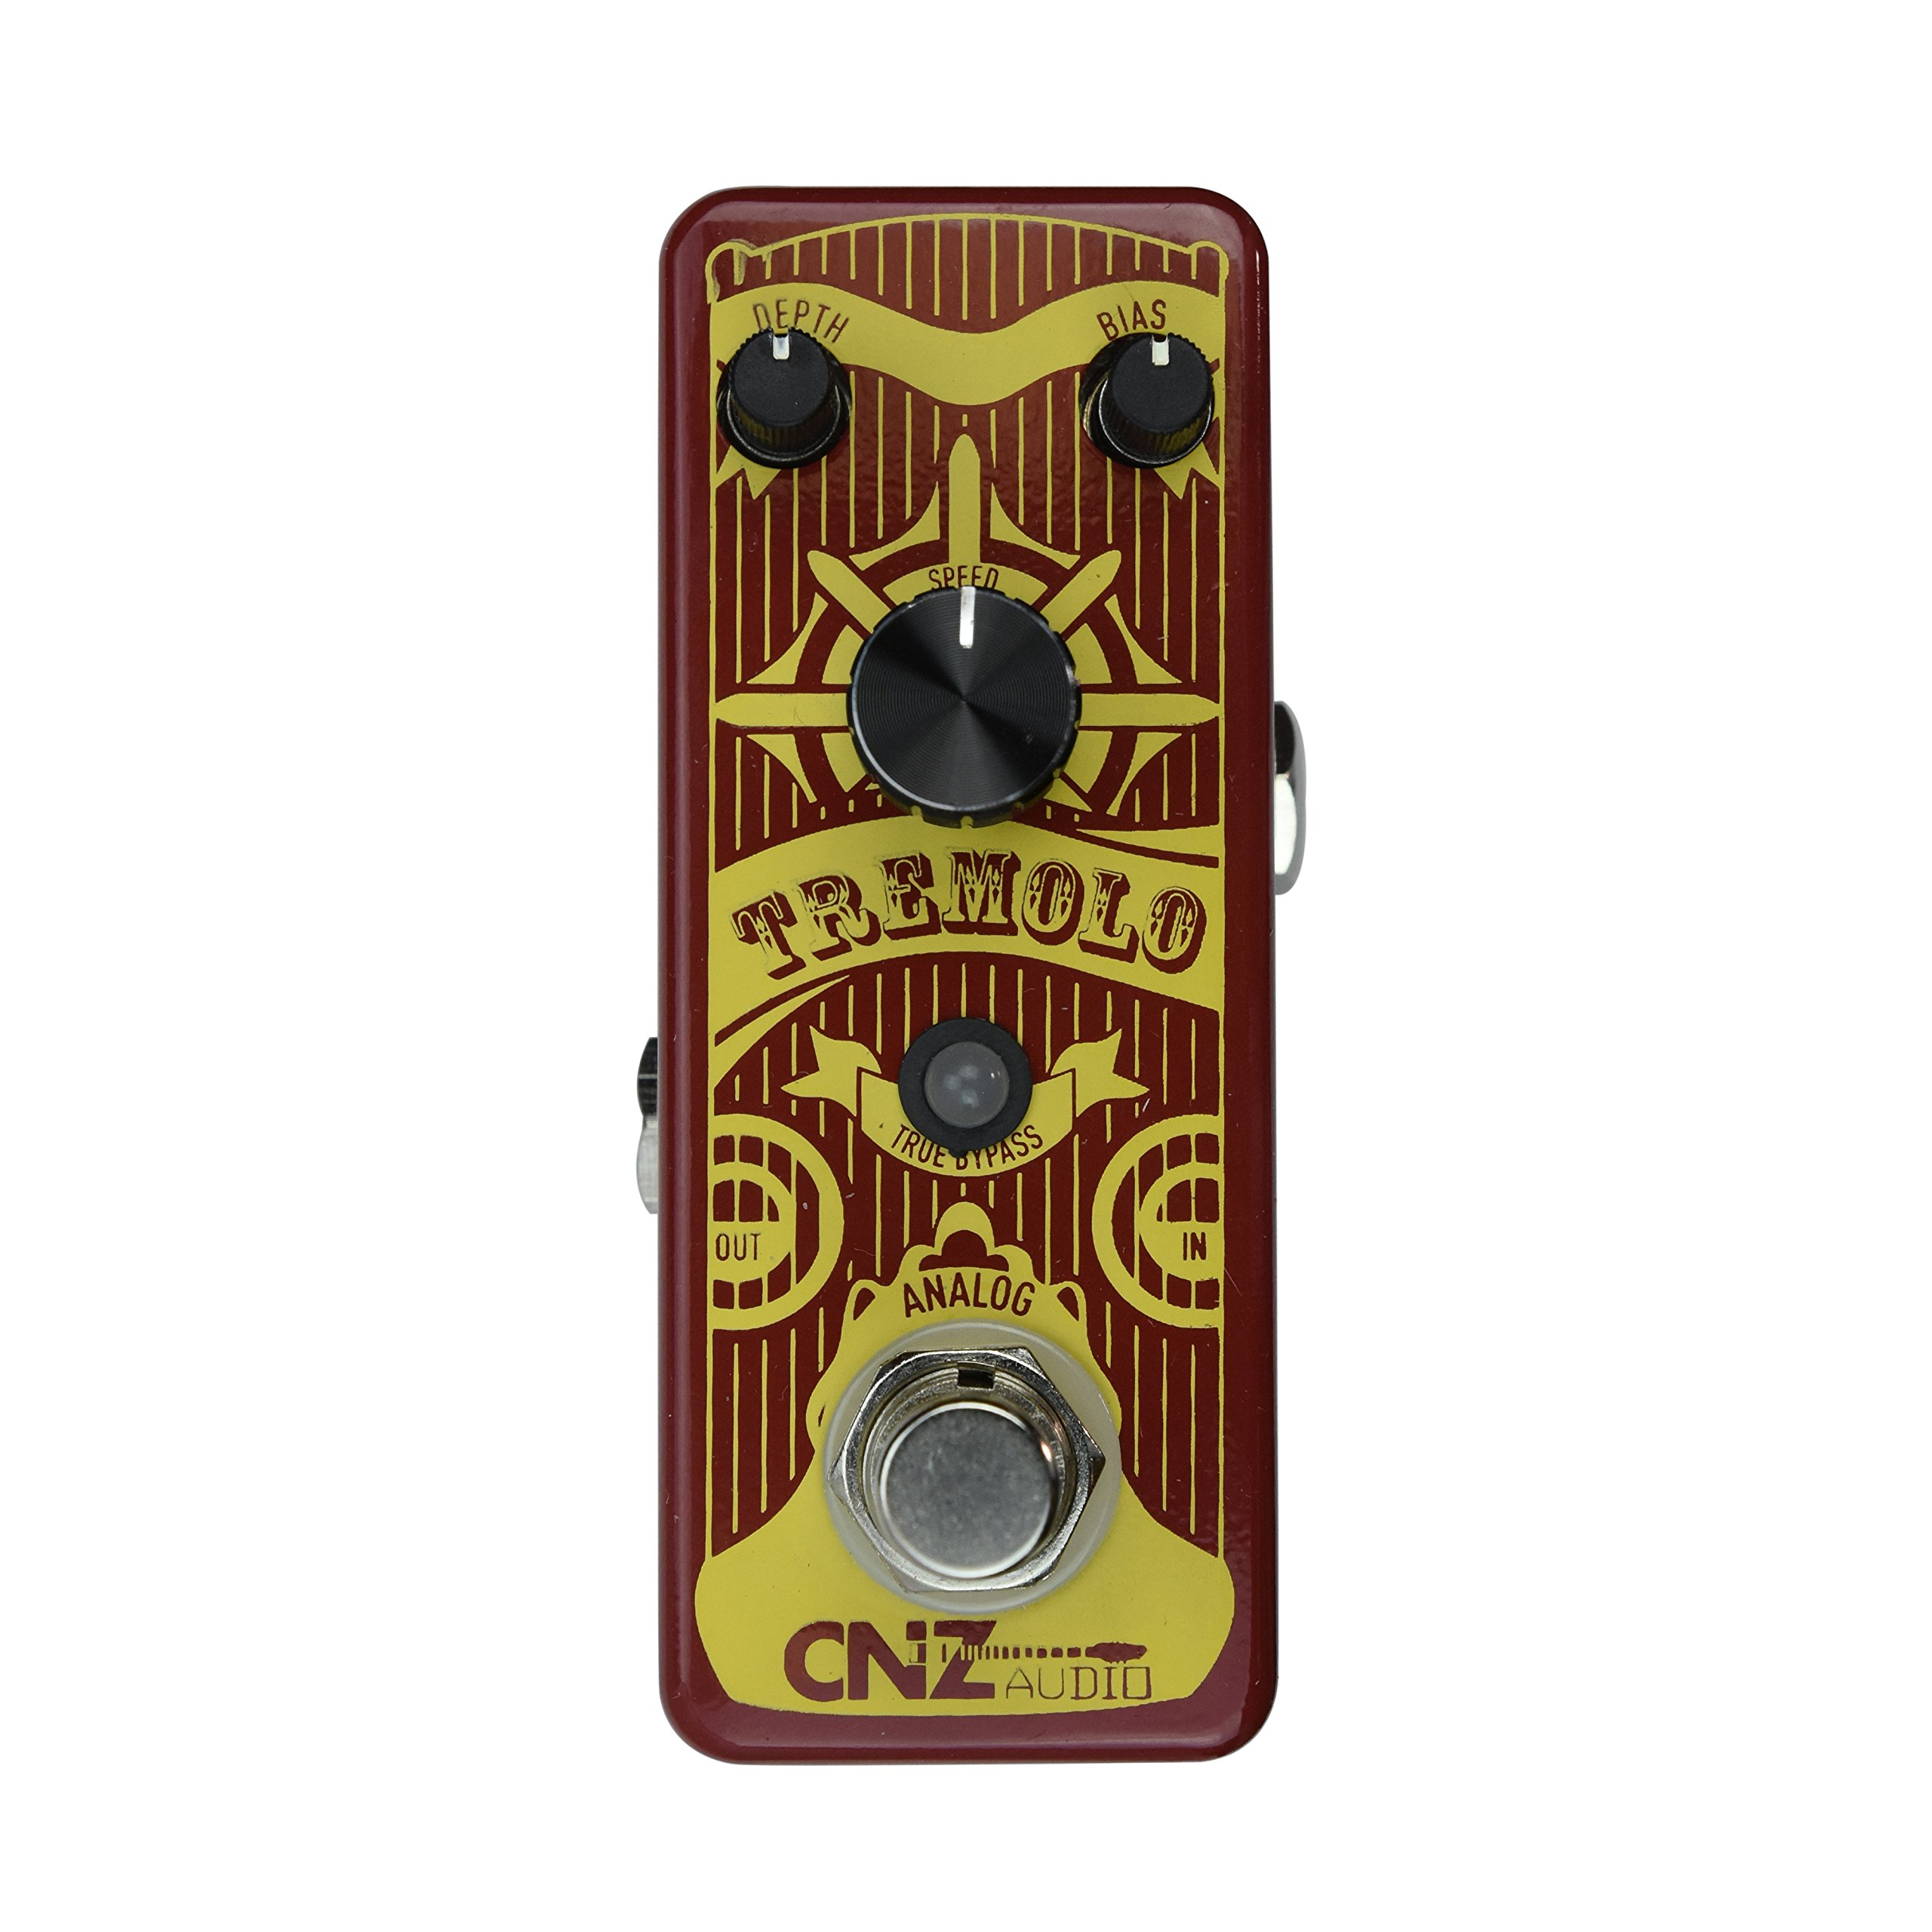 CNZ Audio Tremolo - Analog Guitar Effects Pedal, True Bypass